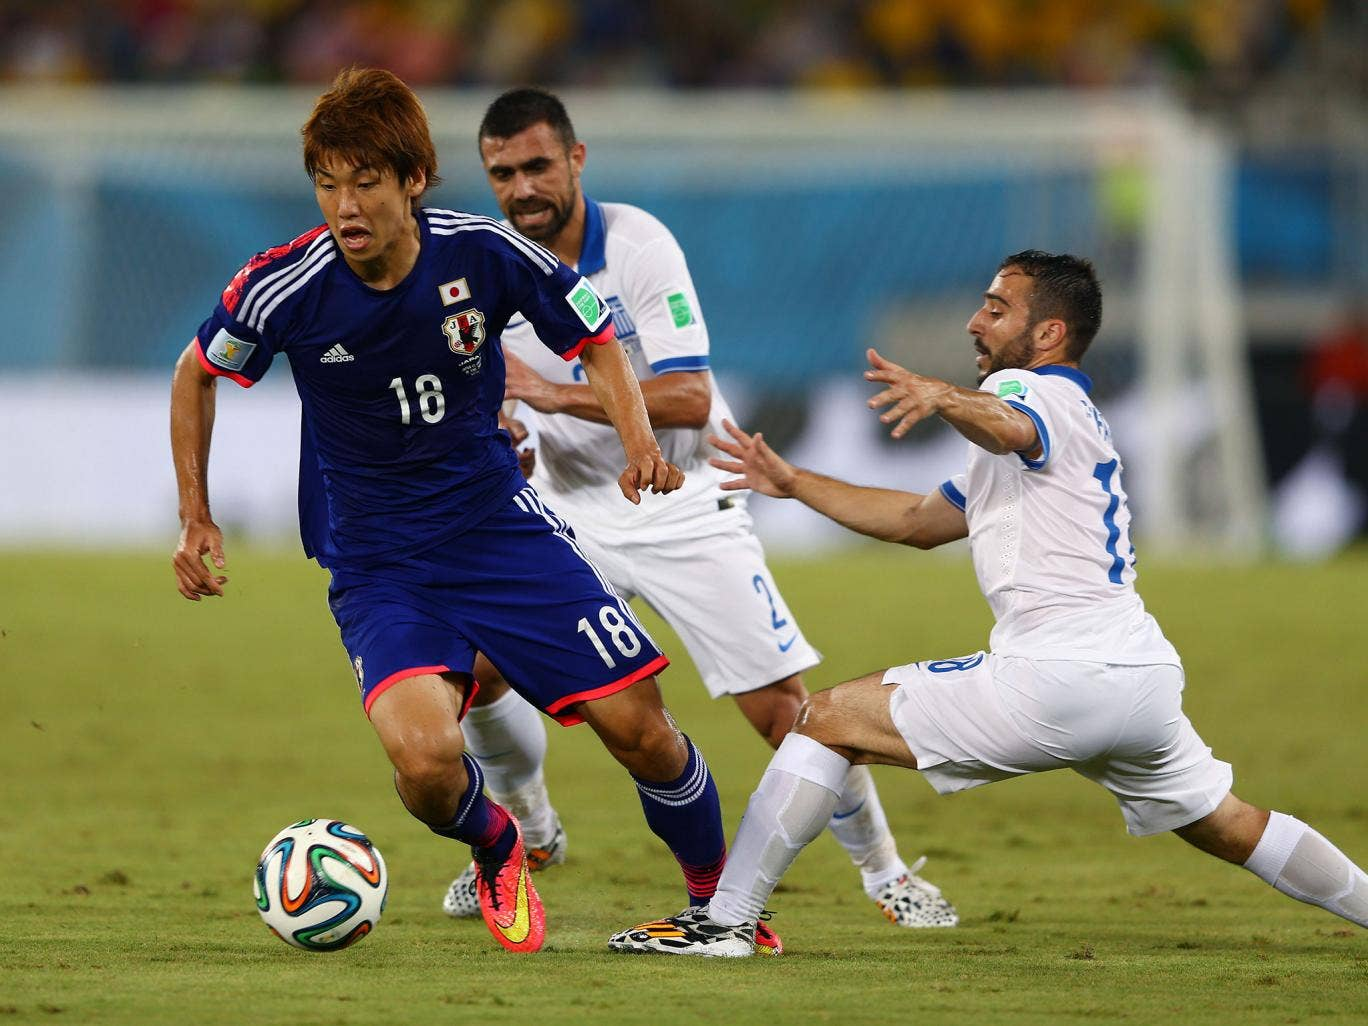 Yuya Osako: Failed to trouble a resolute Greek defence, and eventually subbed. 5